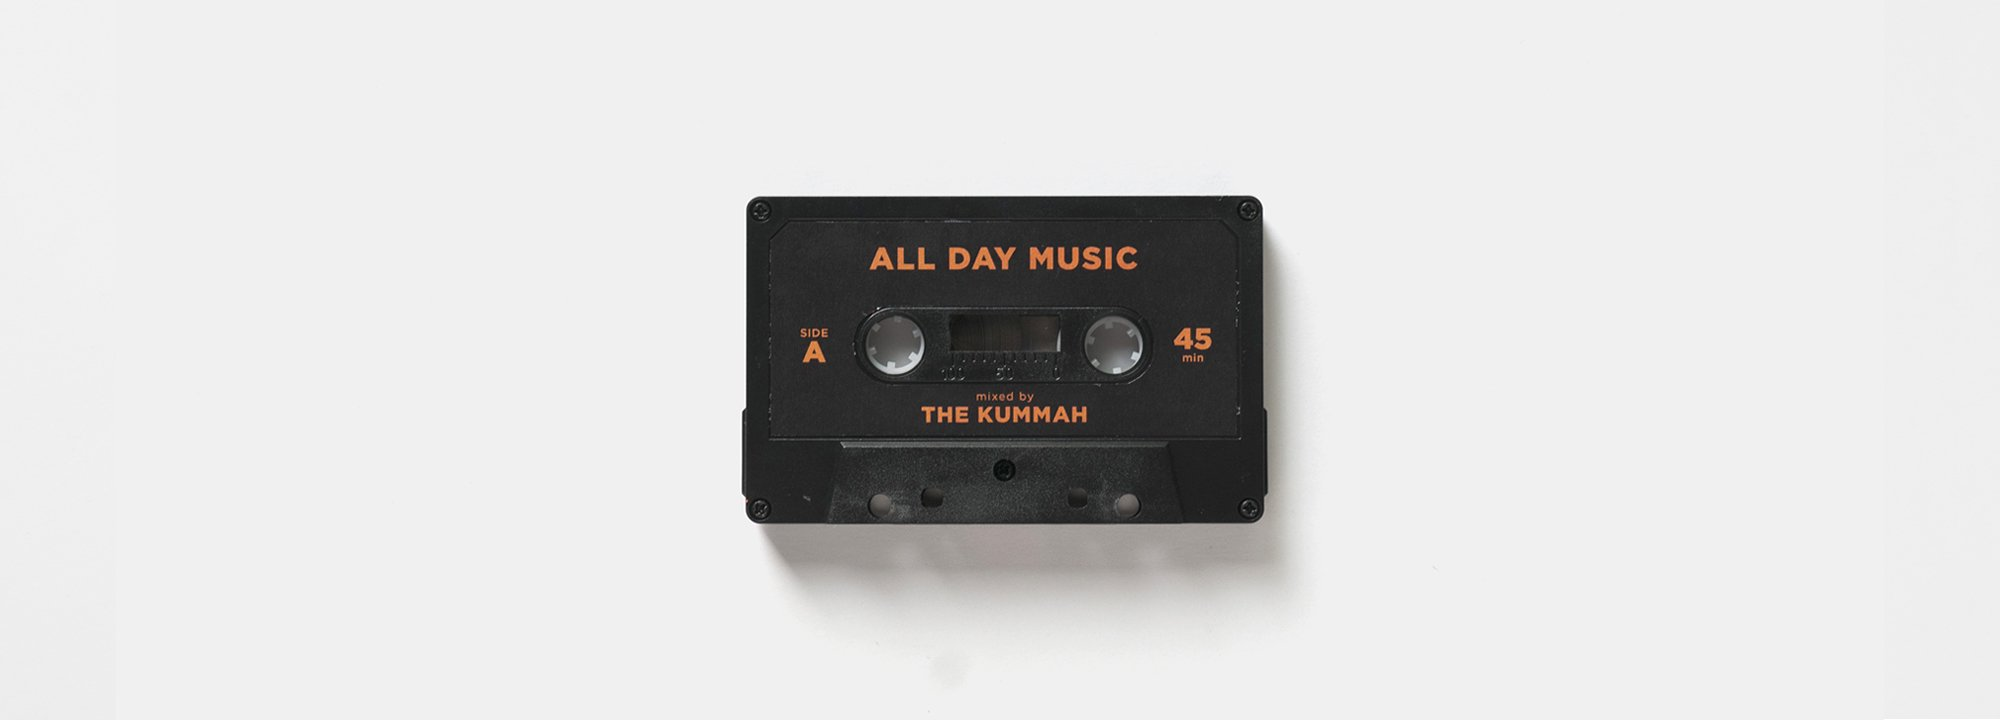 ALL DAY MUSIC #7 - Mixed by THE KUMMAH